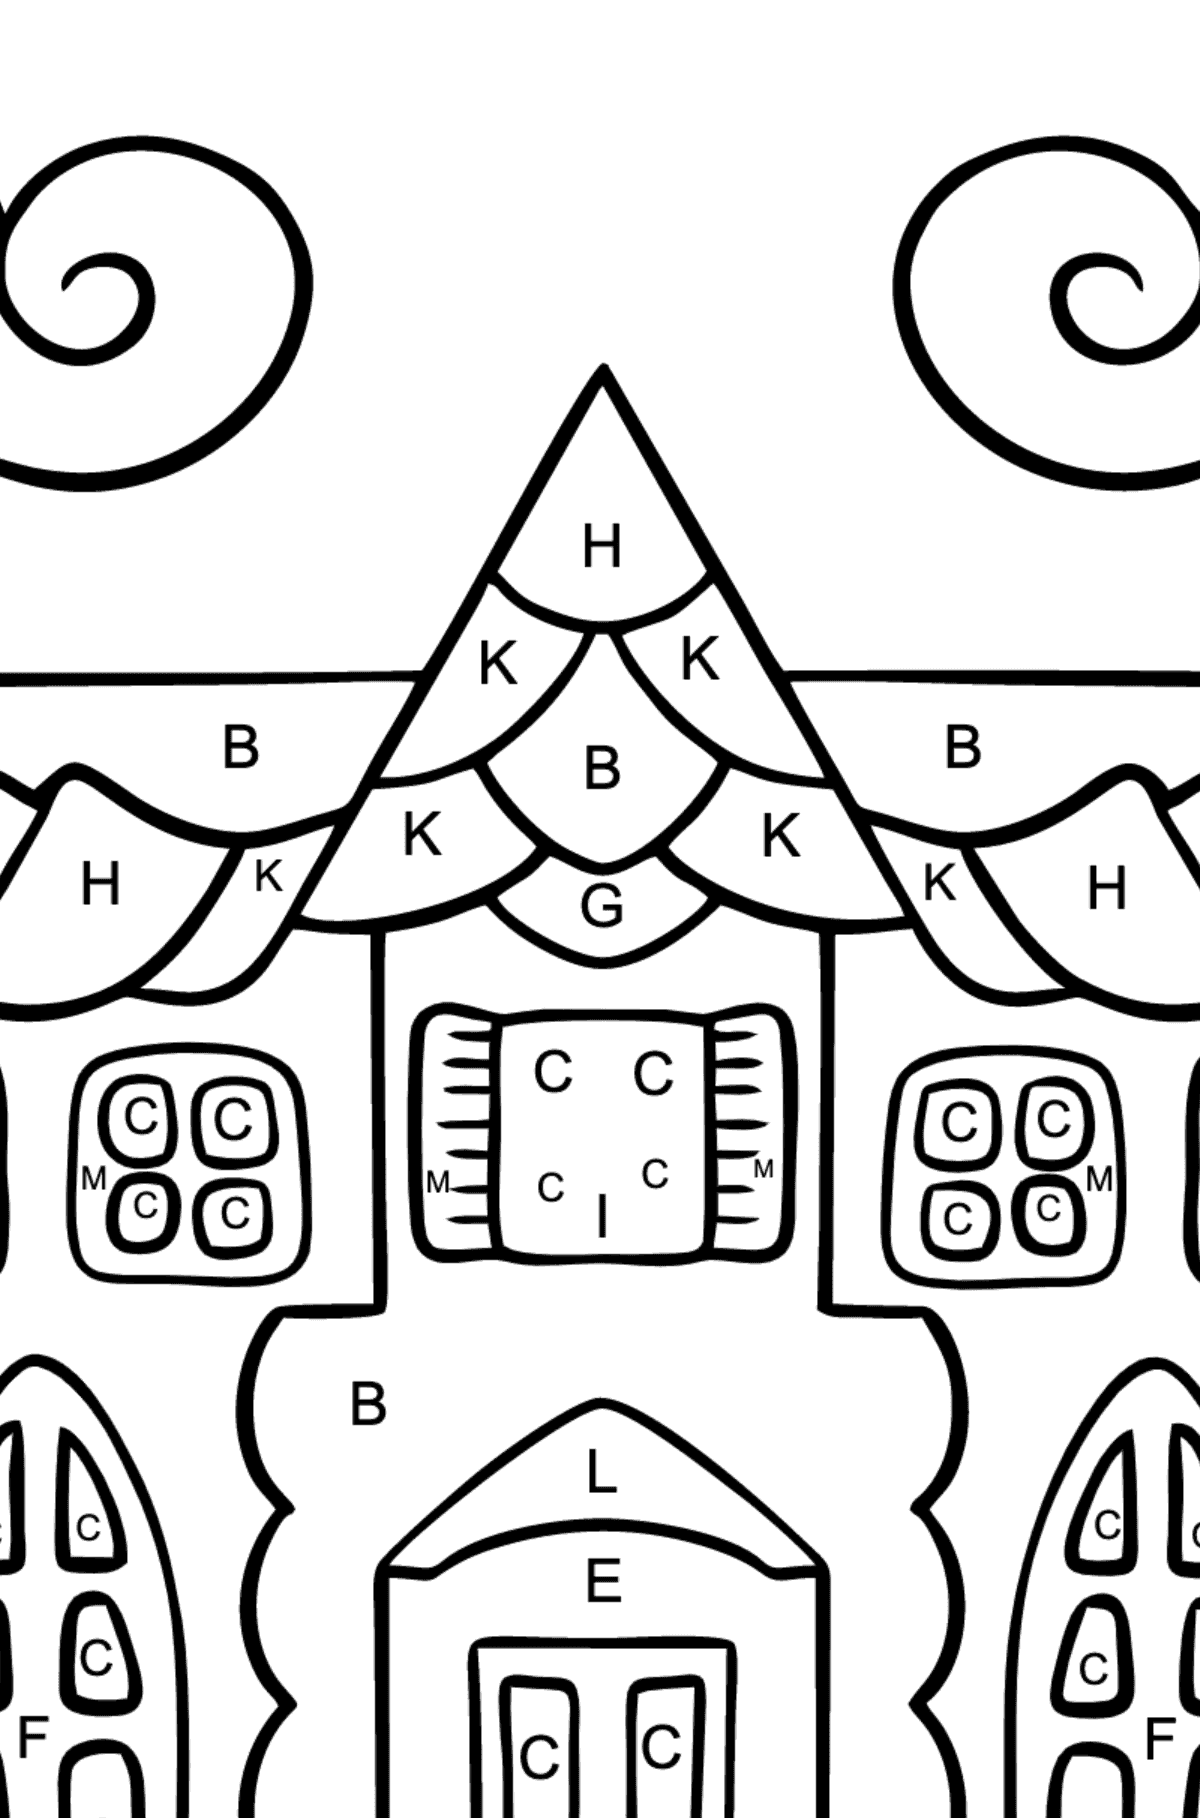 Complex Coloring Page - A House in an Enchanted Kingdom - Coloring by Letters for Kids